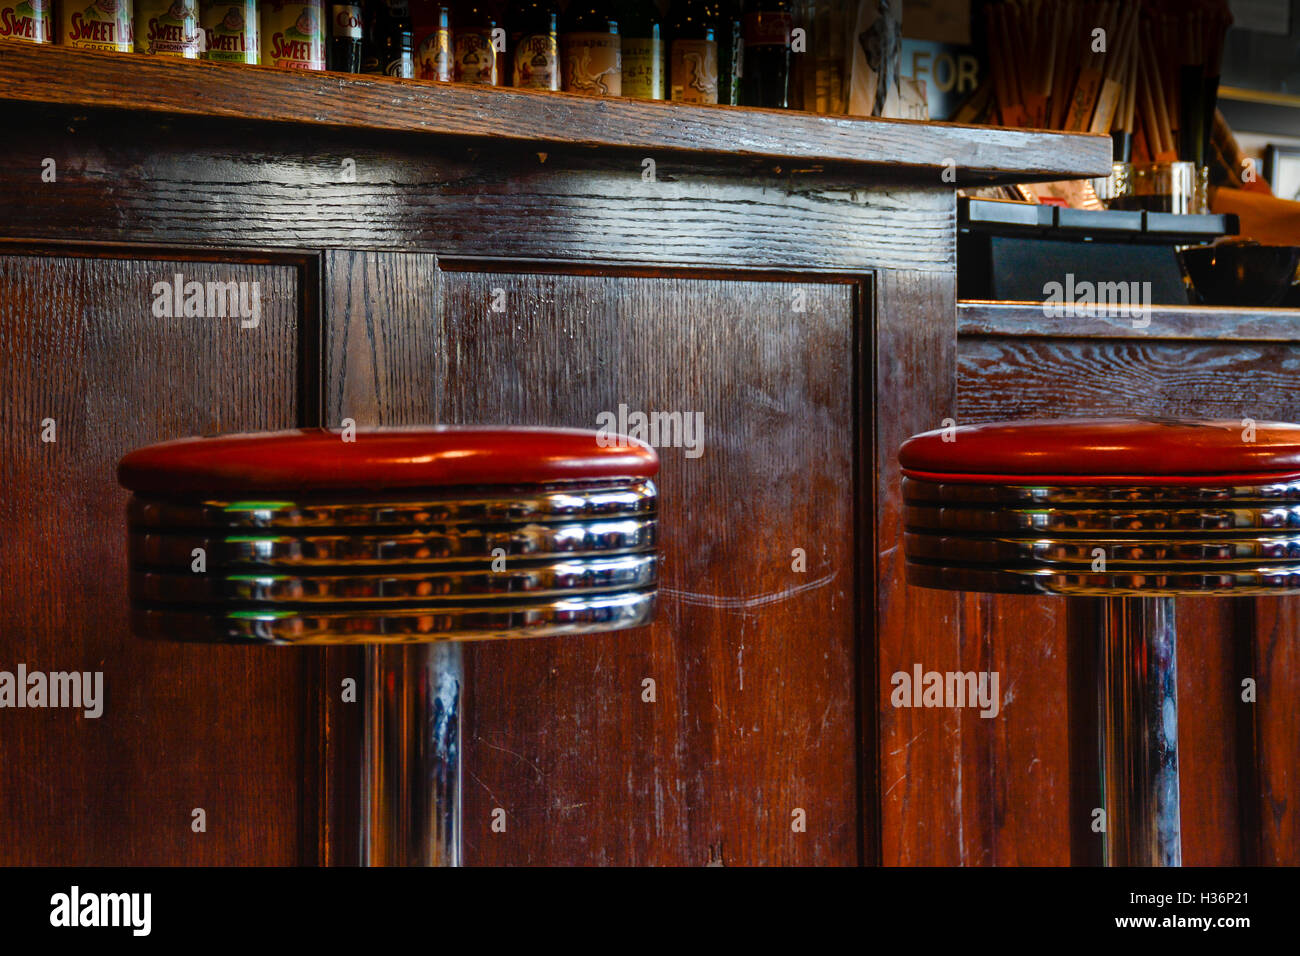 Interior retro bar stools of chrome and red leather against vintage wooden bar area & Interior retro bar stools of chrome and red leather against ... islam-shia.org